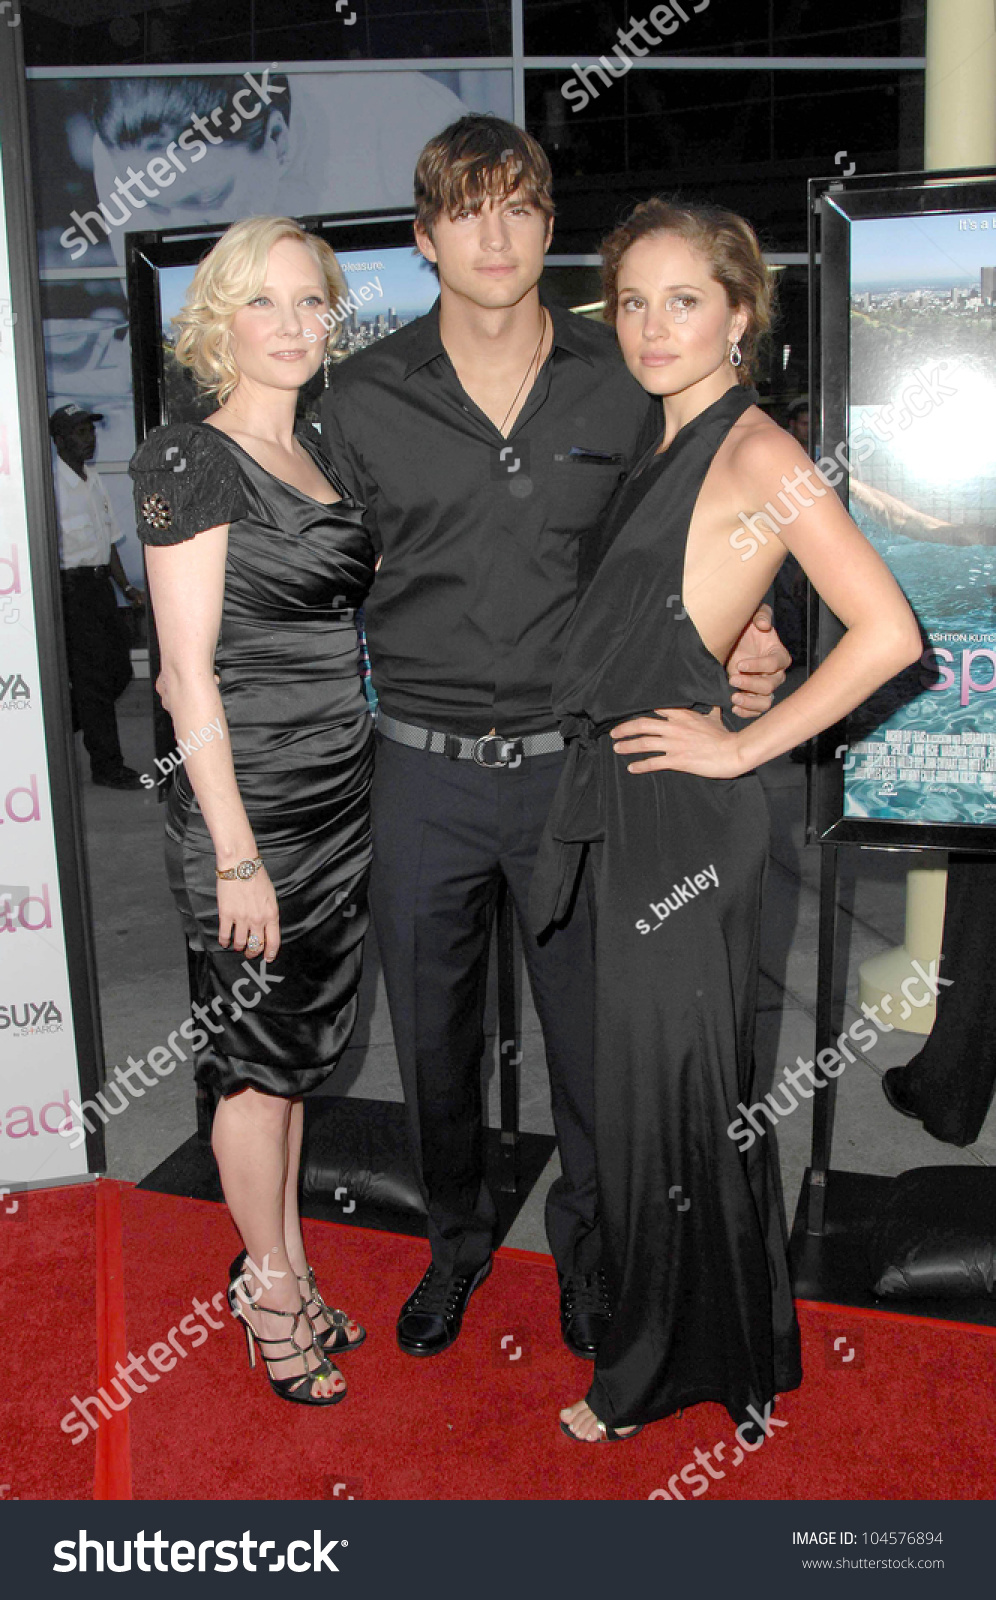 Anne Heche With Ashton Kutcher And Margarita Levieva At